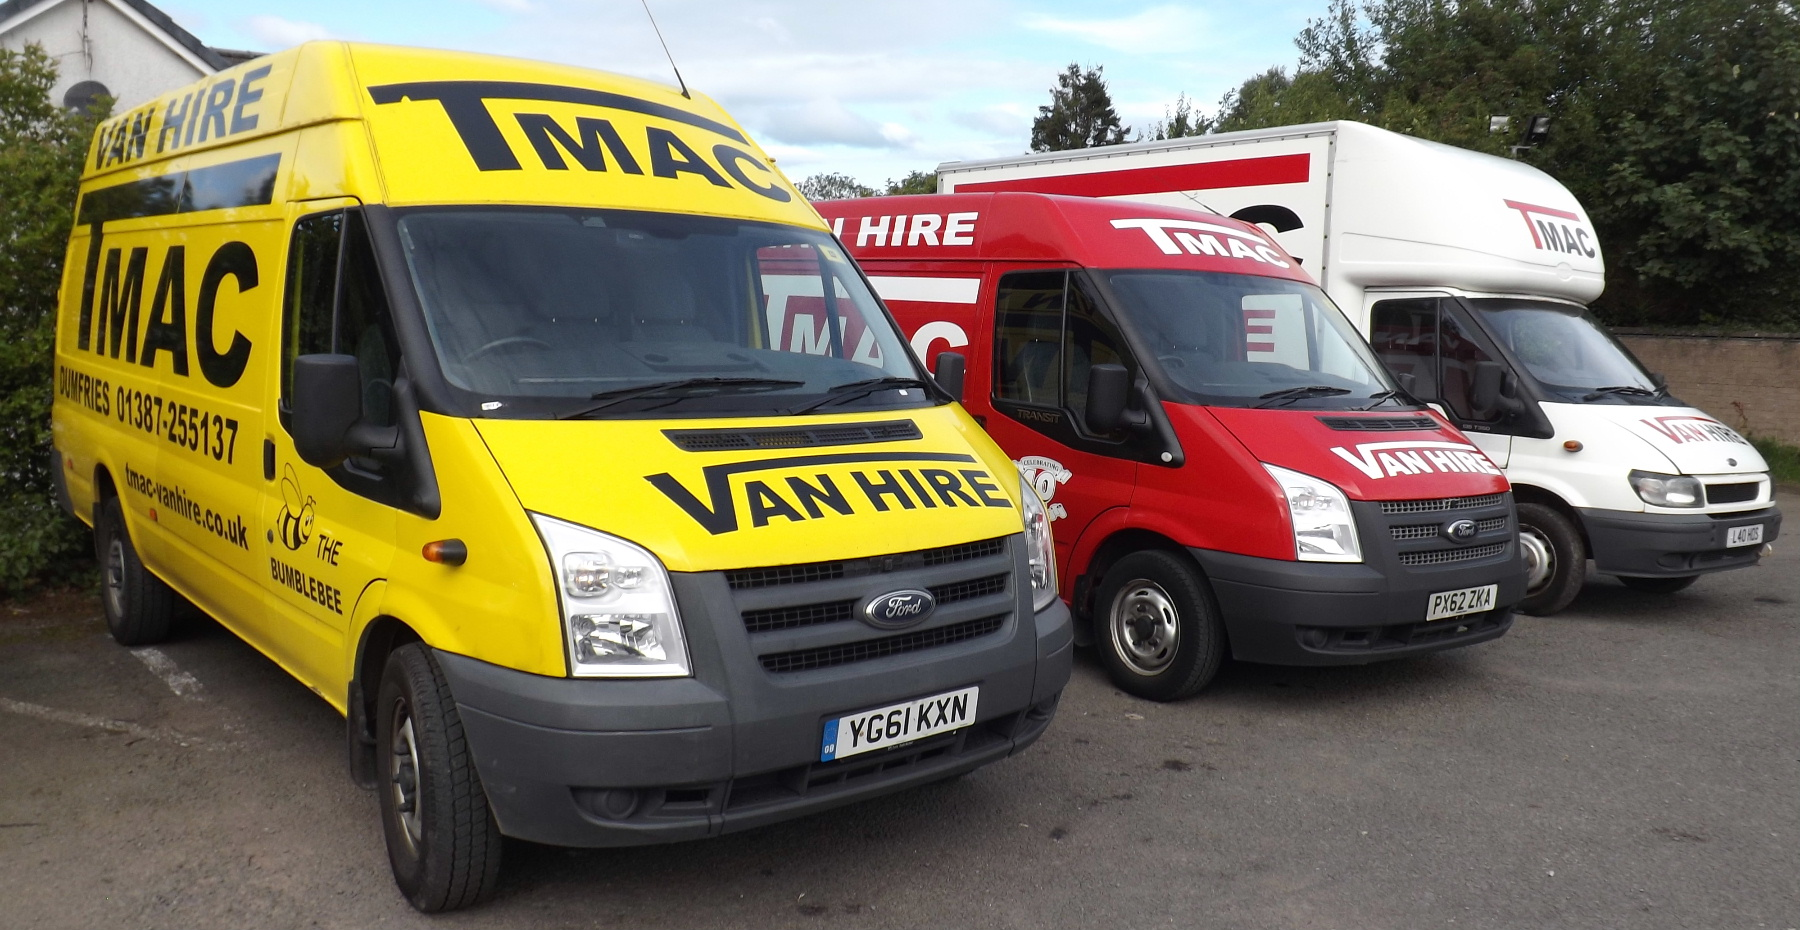 T Mac Van Hire Dumfries - the areas leading van hire specialists